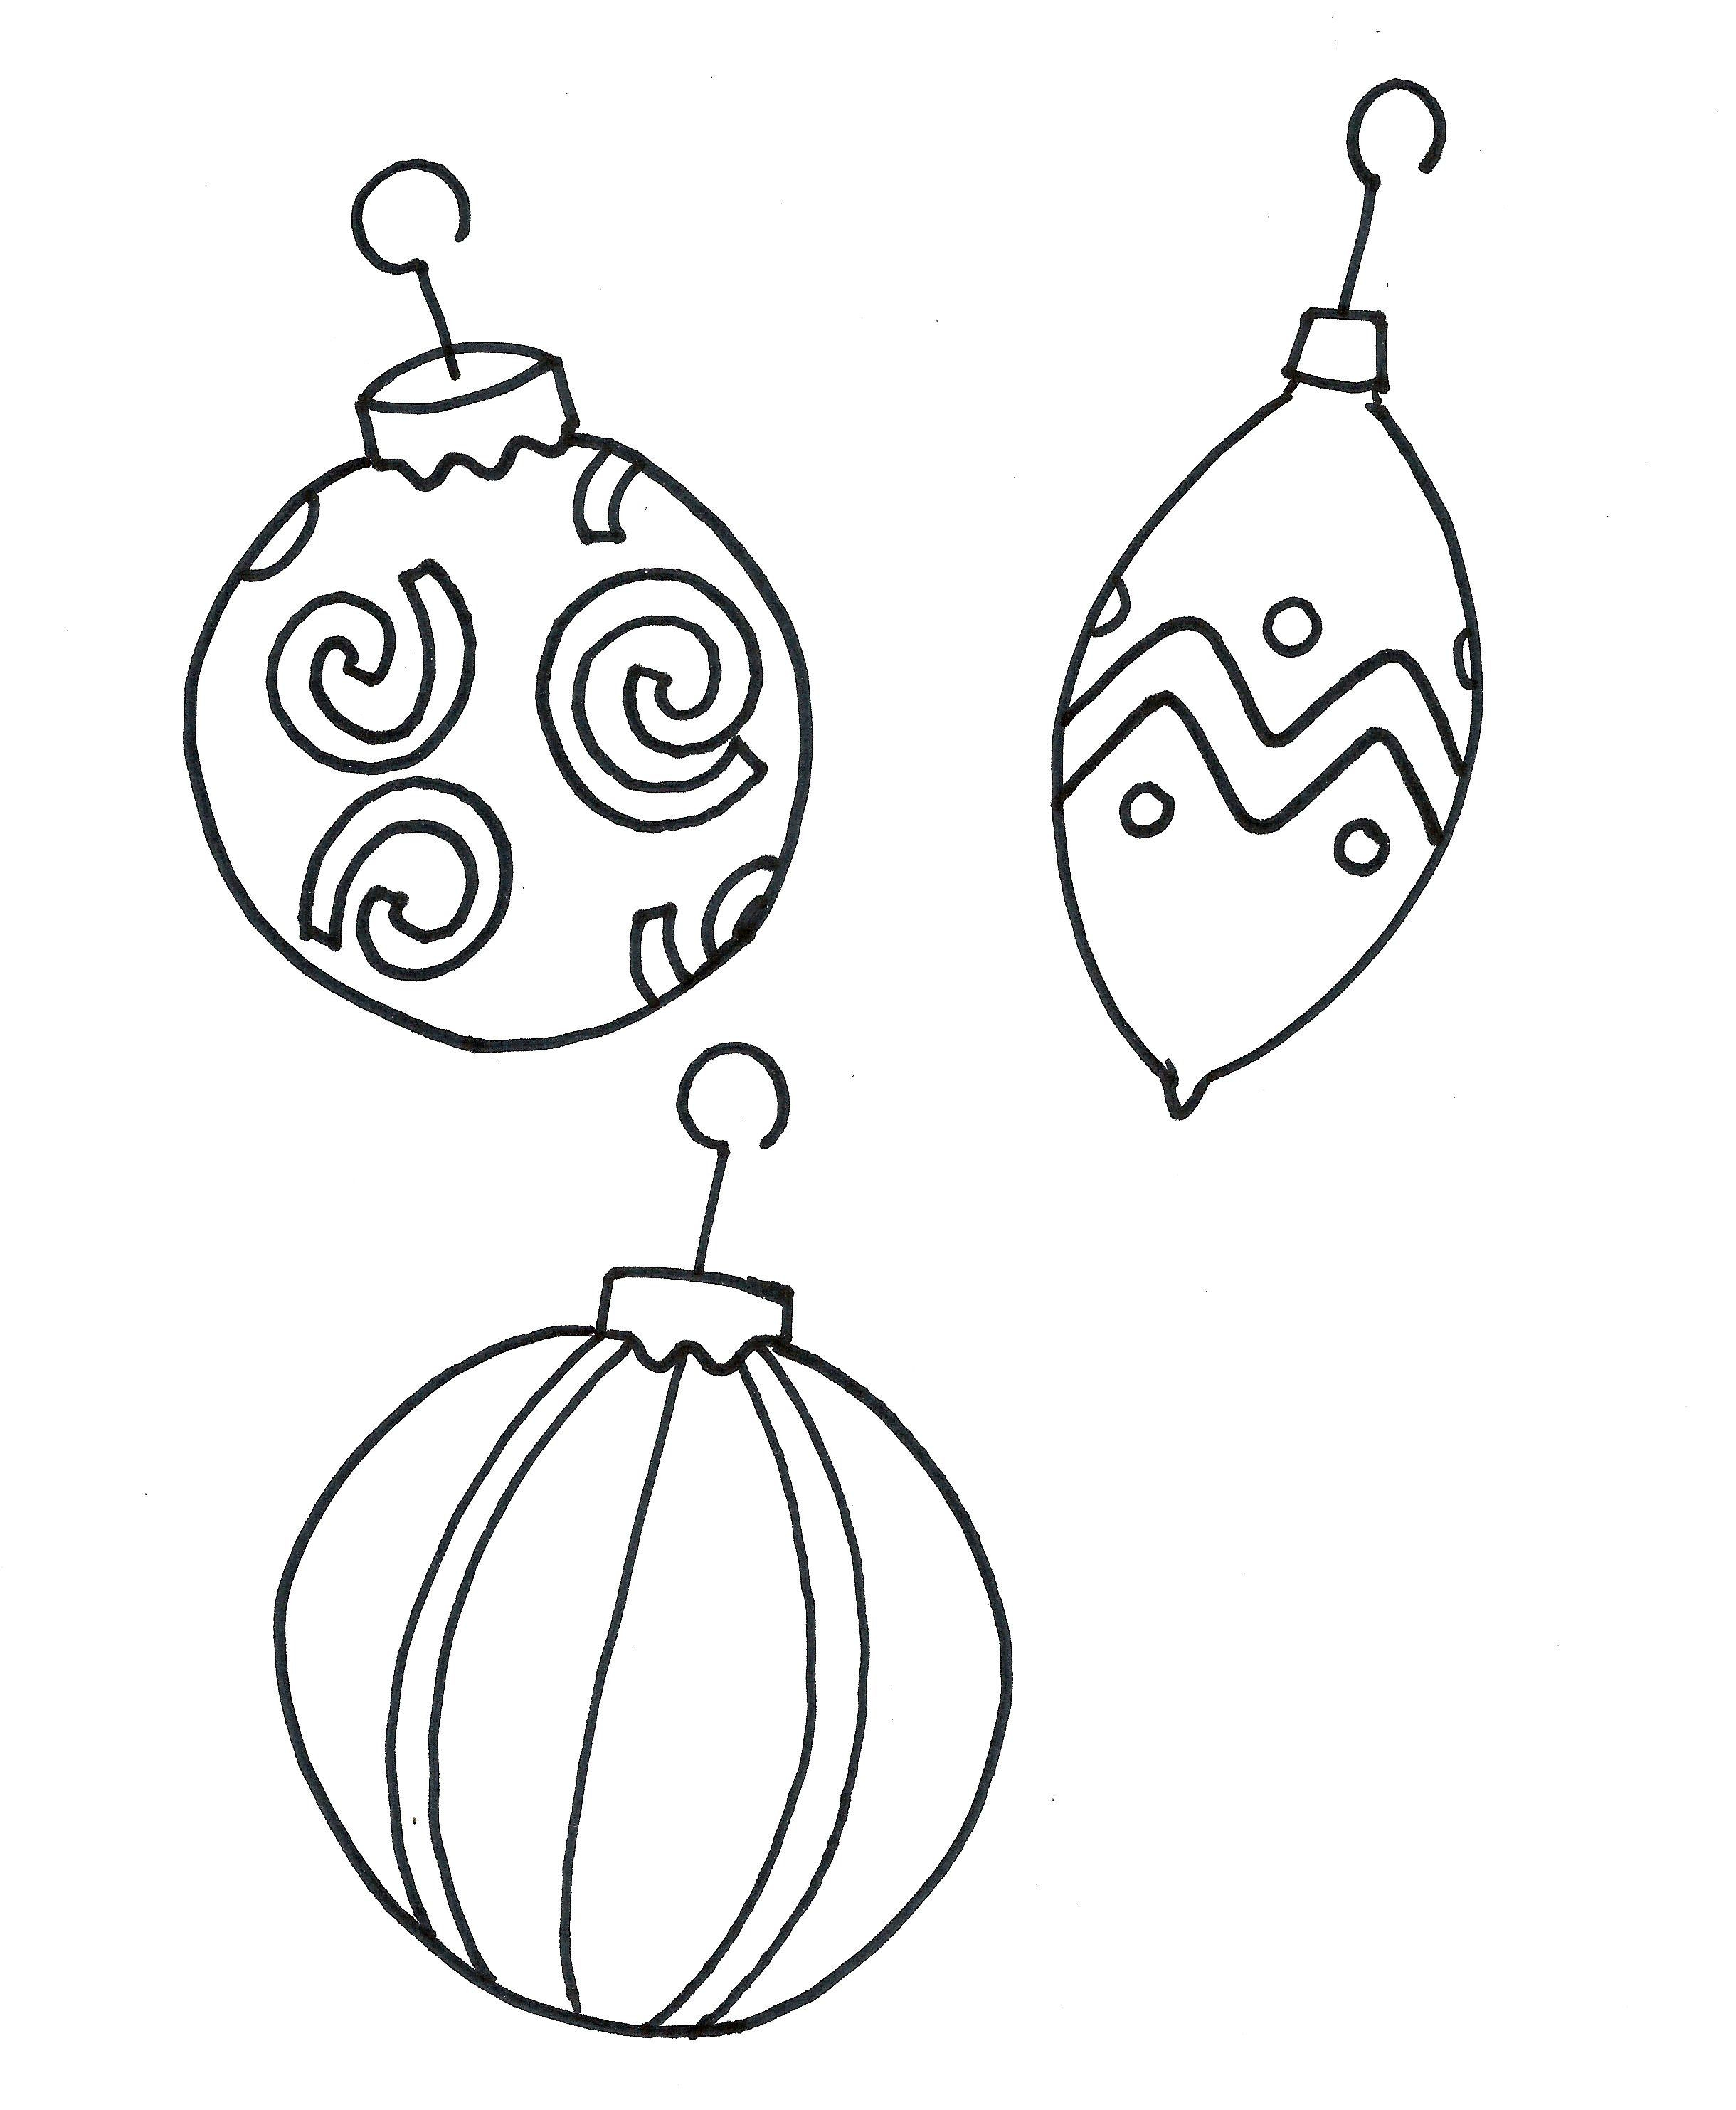 Printable Coloring Pages Christmas Ornament Free | Christmas Crafts - Free Printable Ornaments To Color